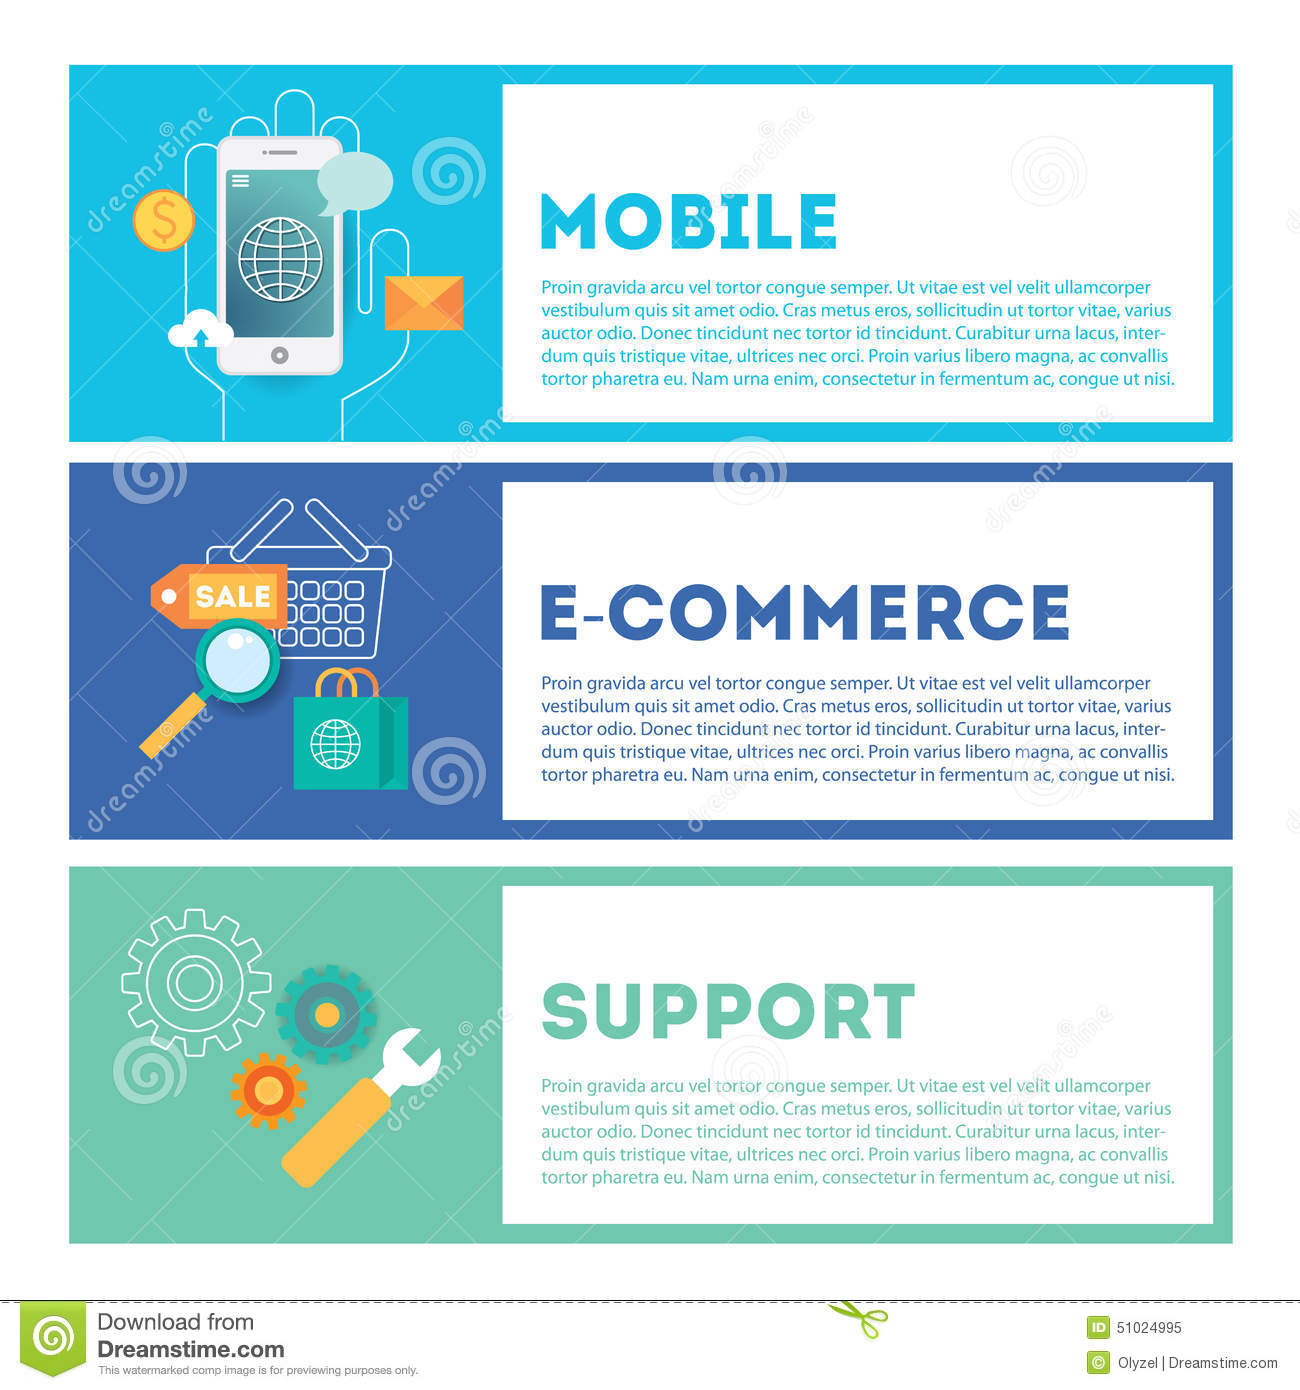 E Commerce Mobili Web Internet Development Illustration Set Mobile E